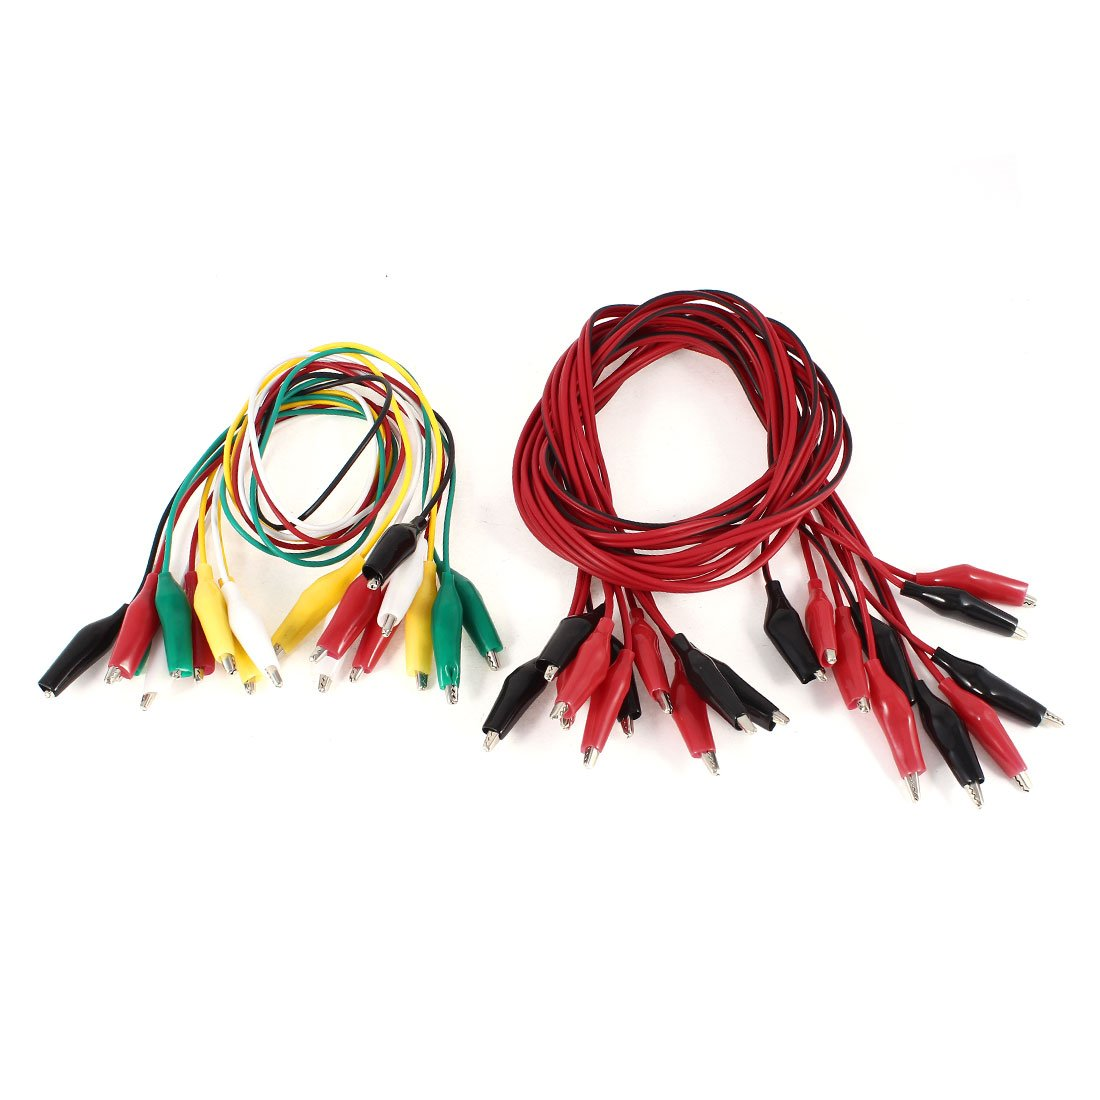 uxcell 15 Pcs Single/Dual Double-ended Wire Testing Work Alligator Clips Jumper